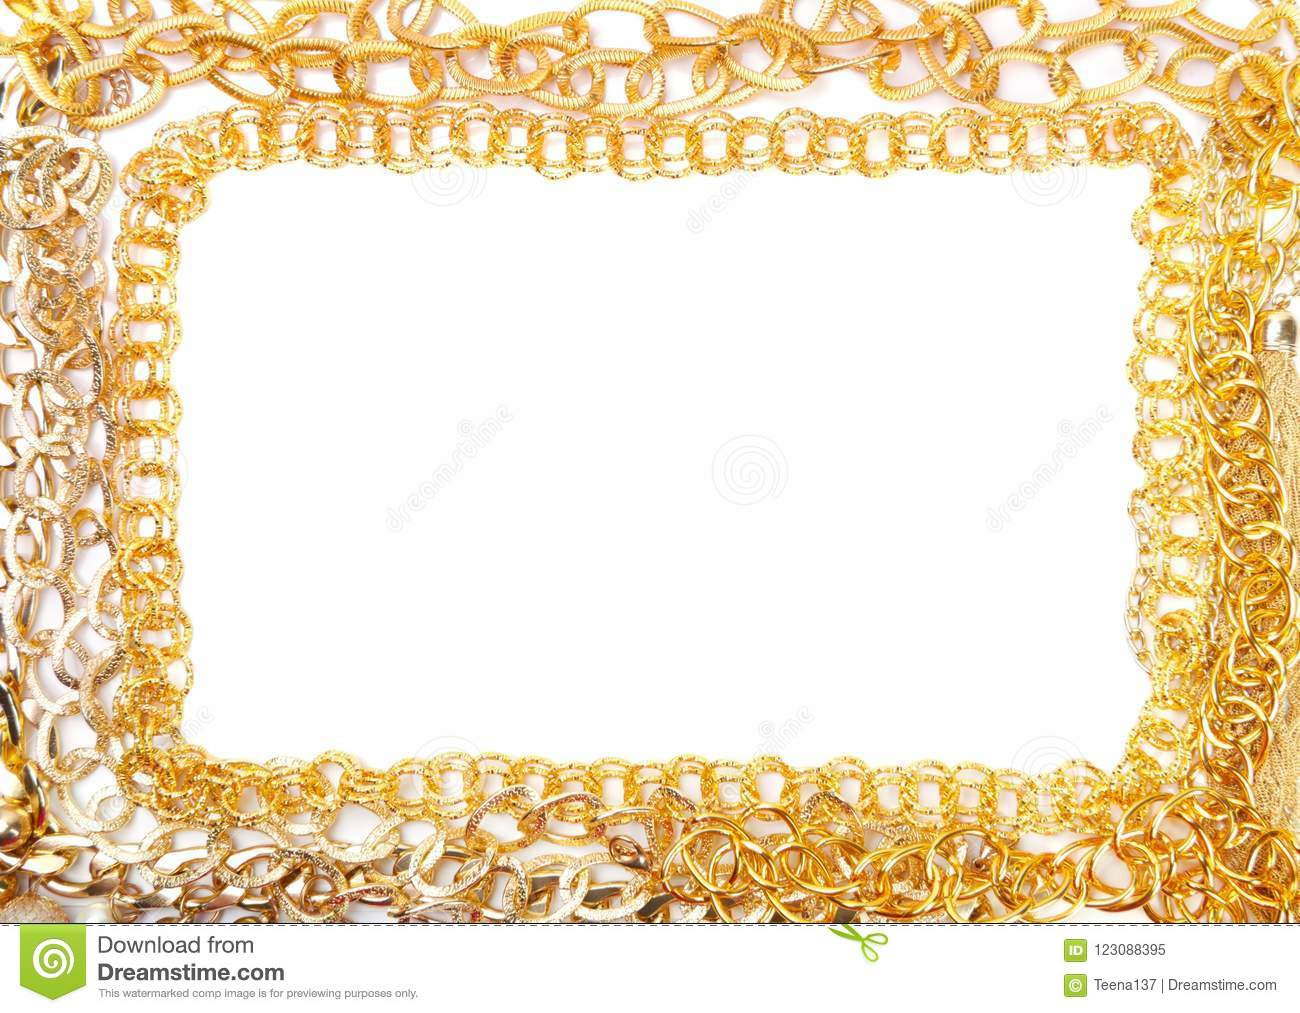 Banch Of Golden Jewelry Frame Stock Image - Image of object, jewel ...